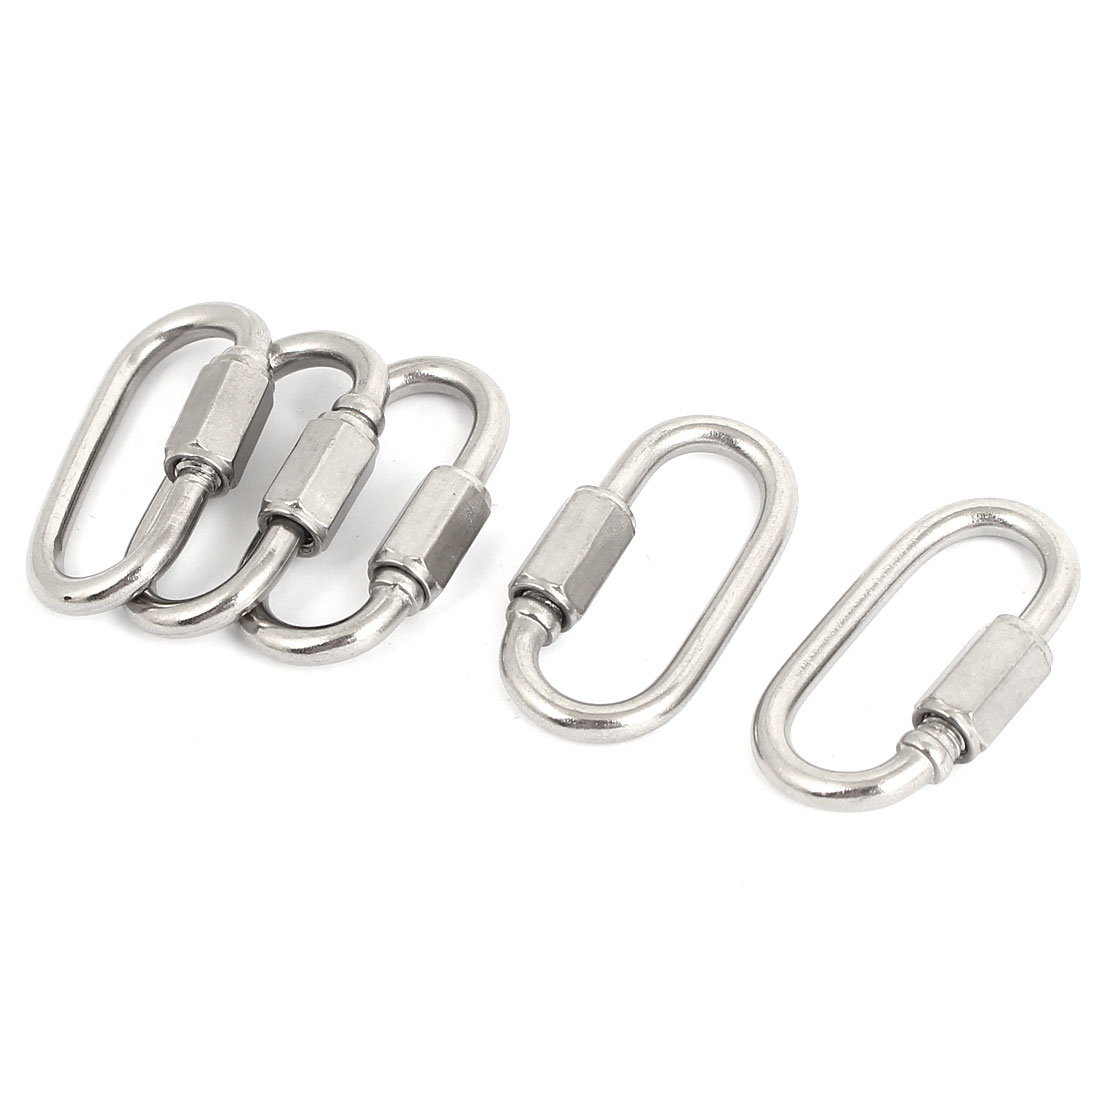 3.5mm Thickness Stainless Steel Quick Links Carabiners 5 Pcs